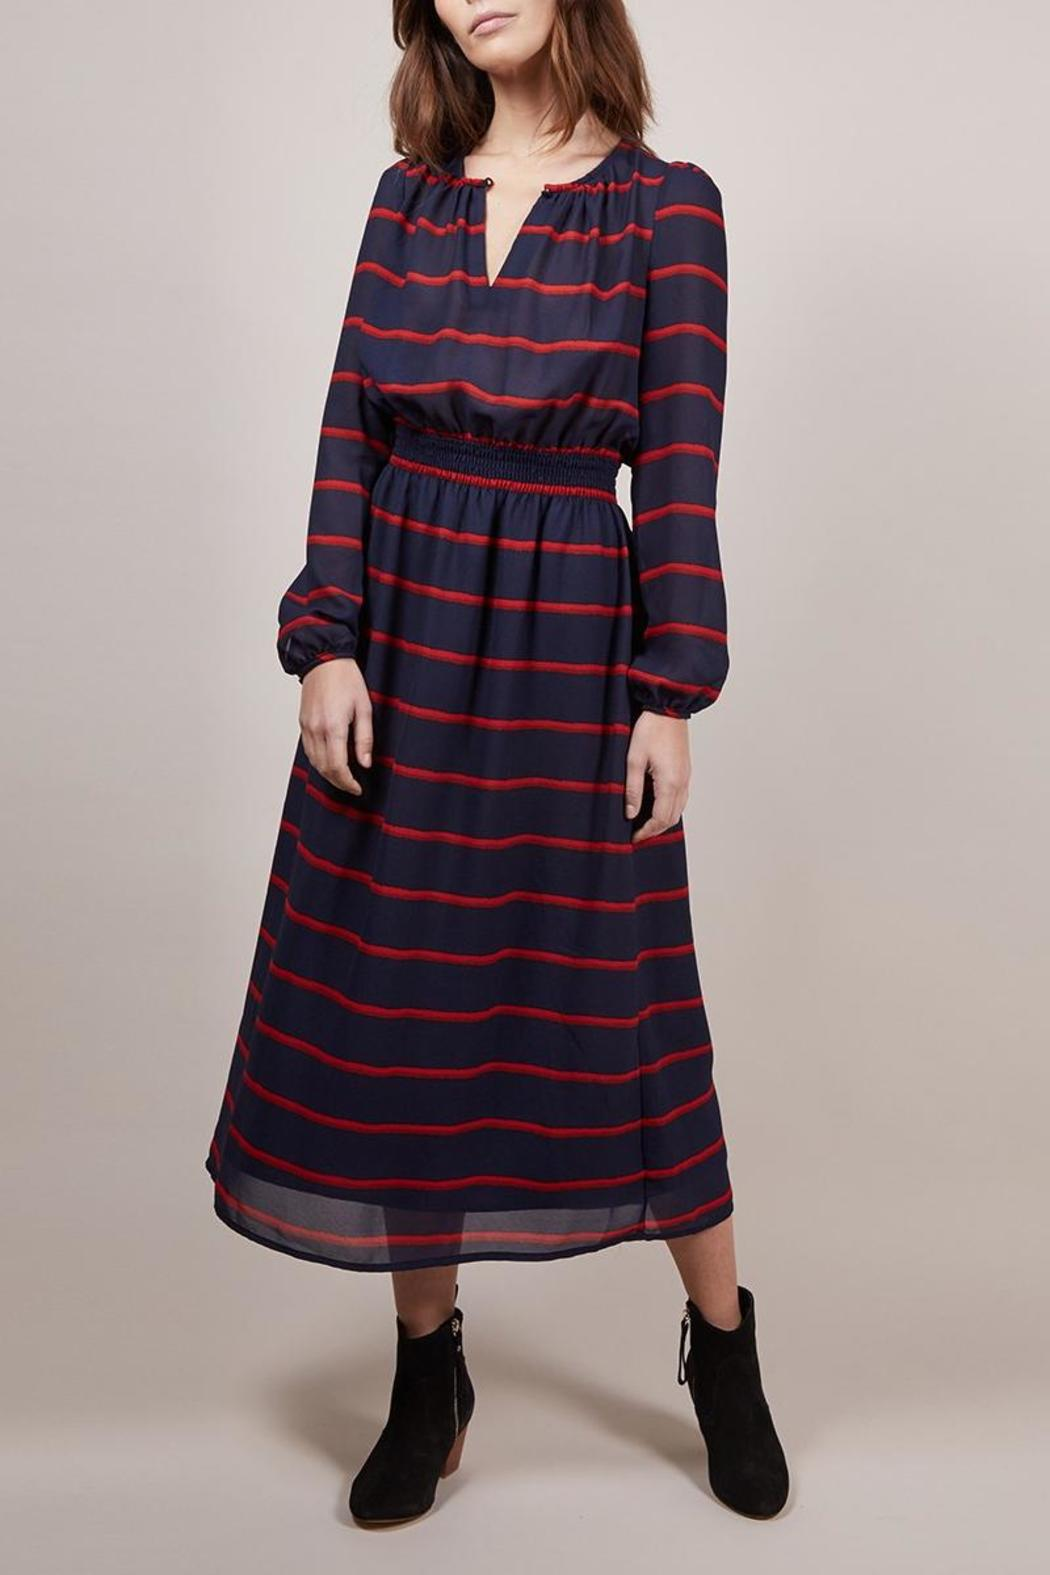 FRNCH Amaryllis Striped Dress - Front Cropped Image